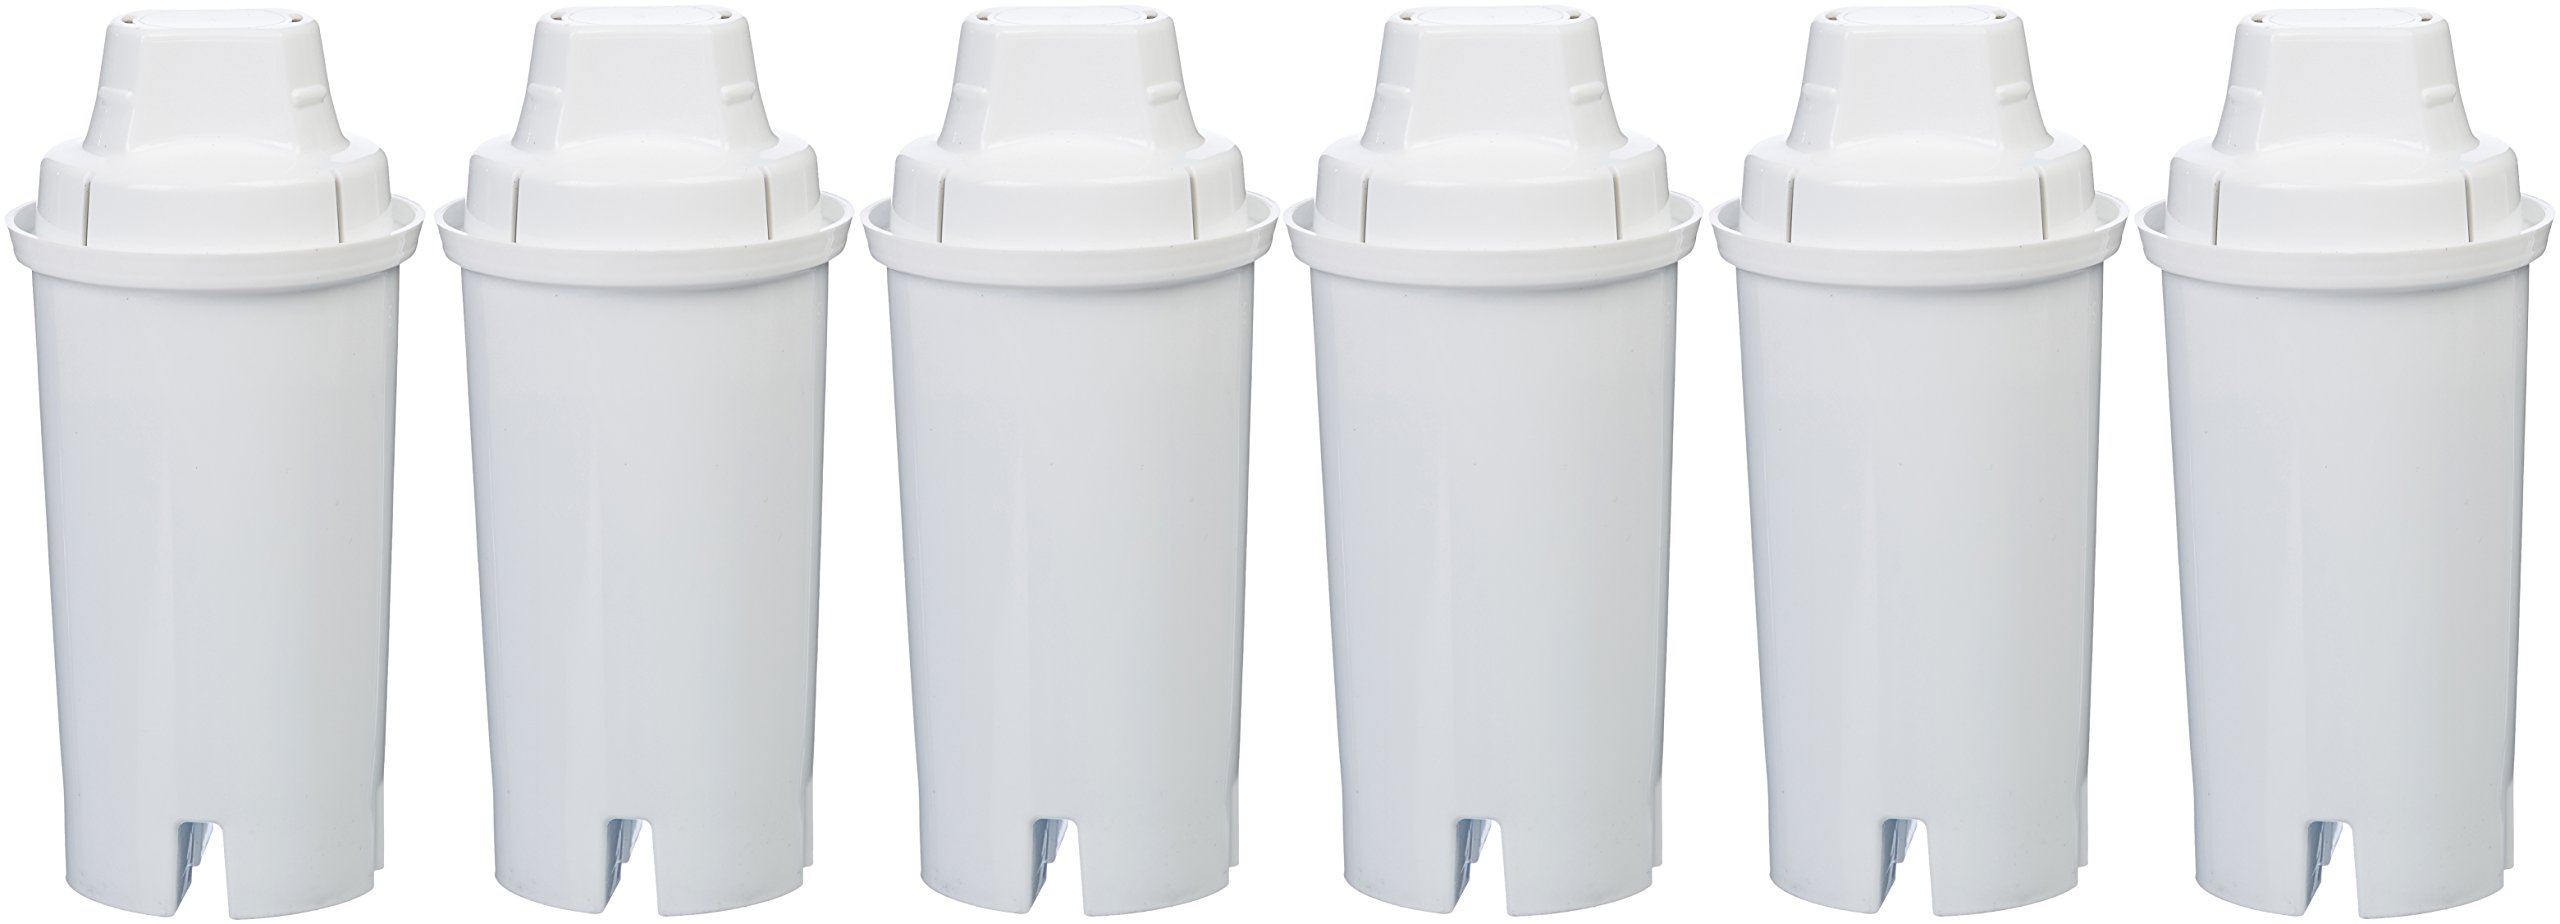 AmazonBasics Replacement Water Filters for AmazonBasics & Brita Pitchers - 6-Pack